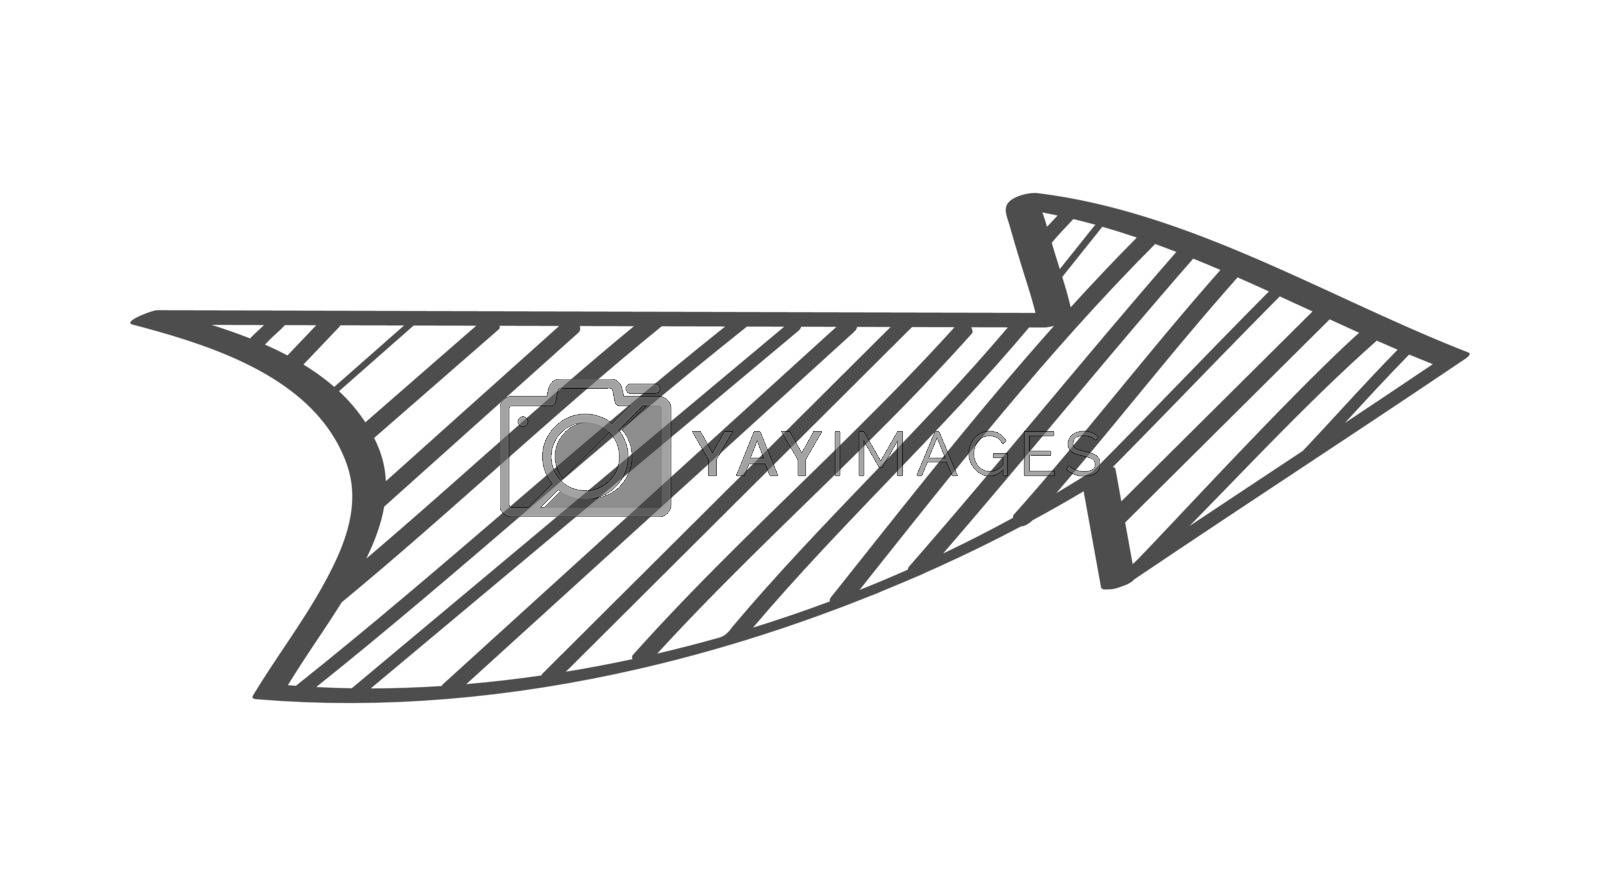 Single shaded arrow. Vector drawing in the Doodle style, isolated on a white background for design and theme design.